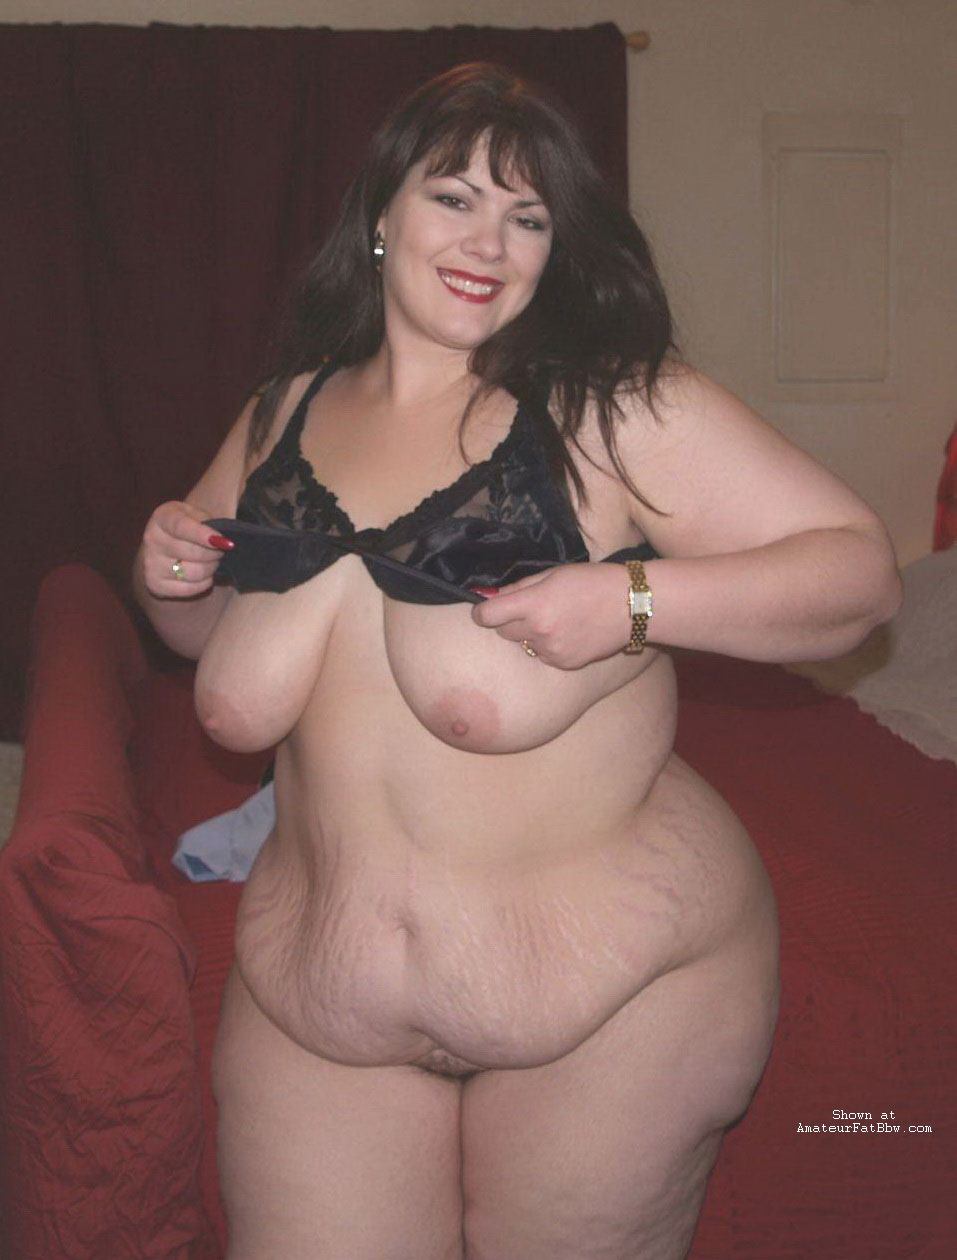 from Mack nude pics of chunky girls